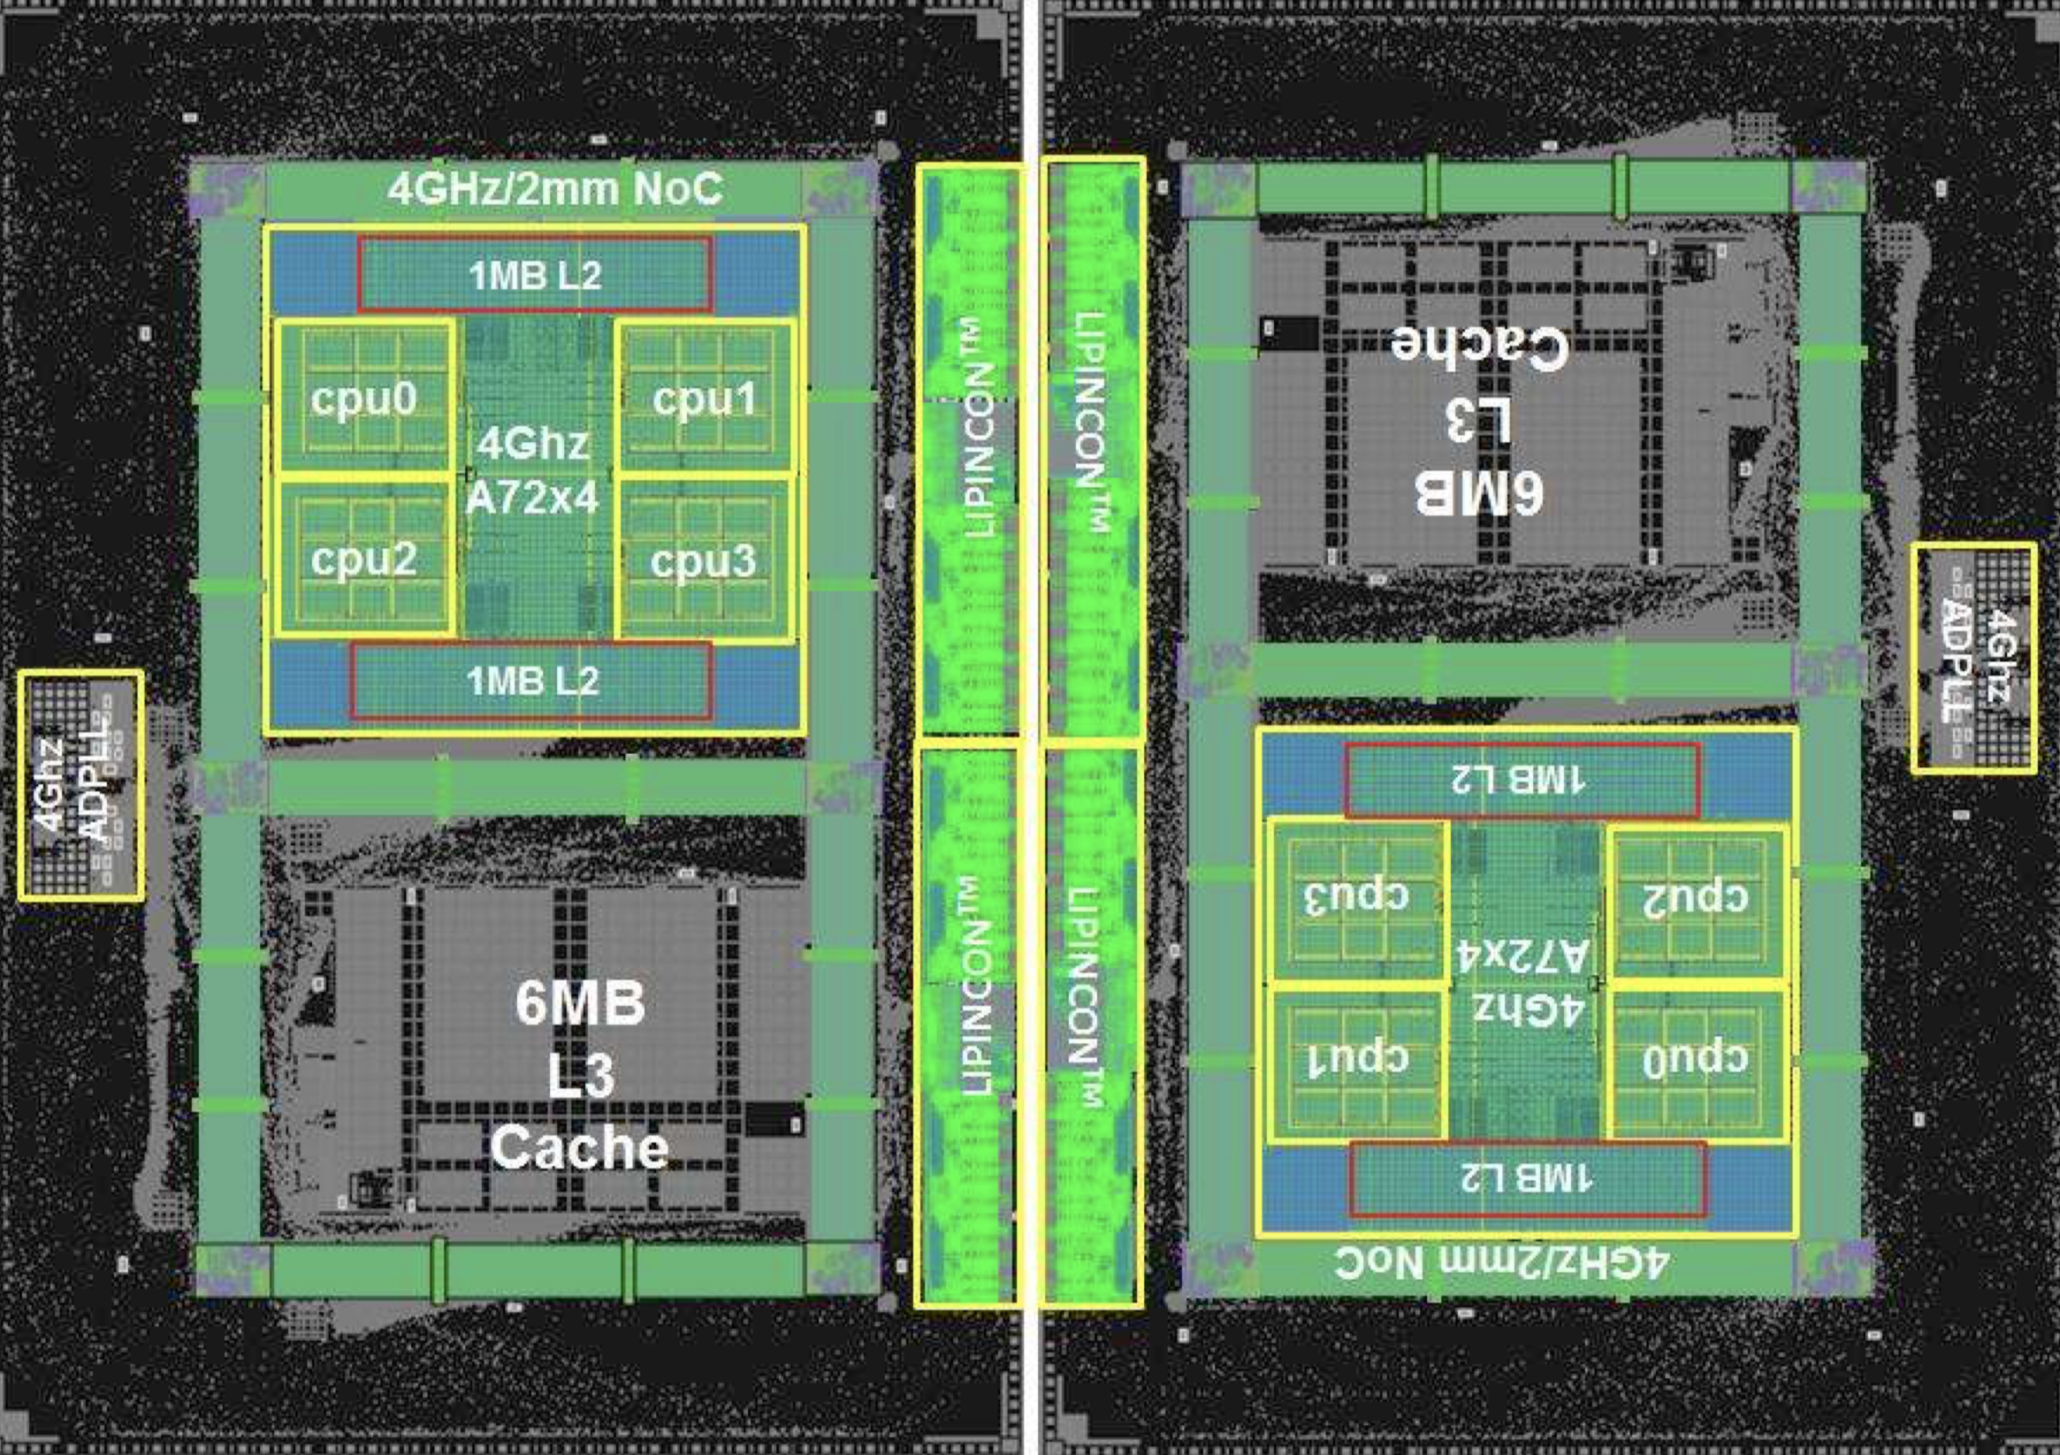 TSMC's Custom Built, Octa-Core A72 Chip Reaches 4GHz At 1 20V